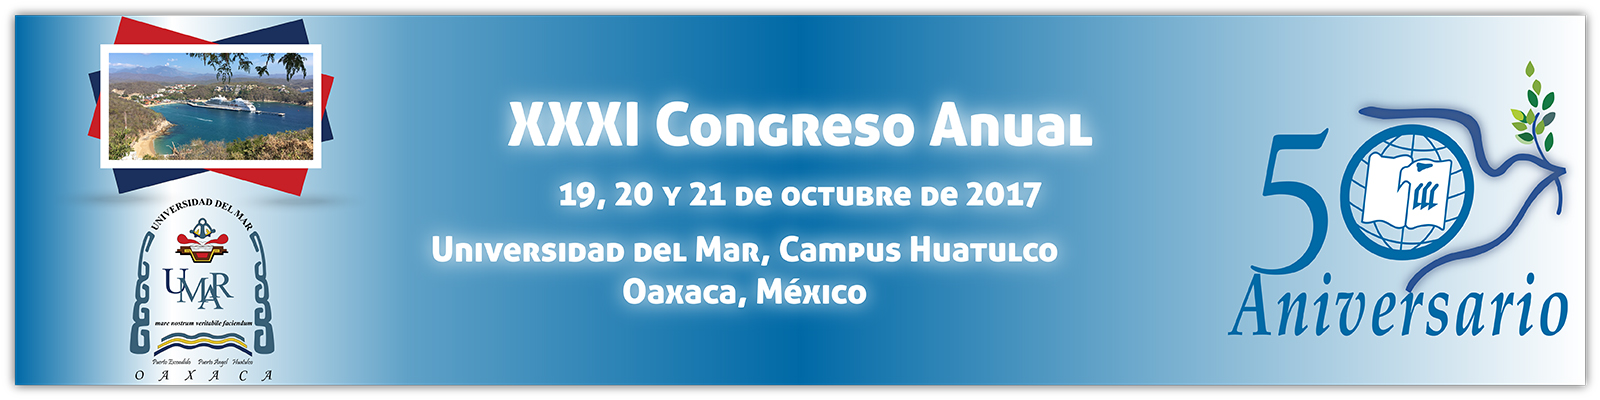 Slider Design - XXXI Congreso Anual